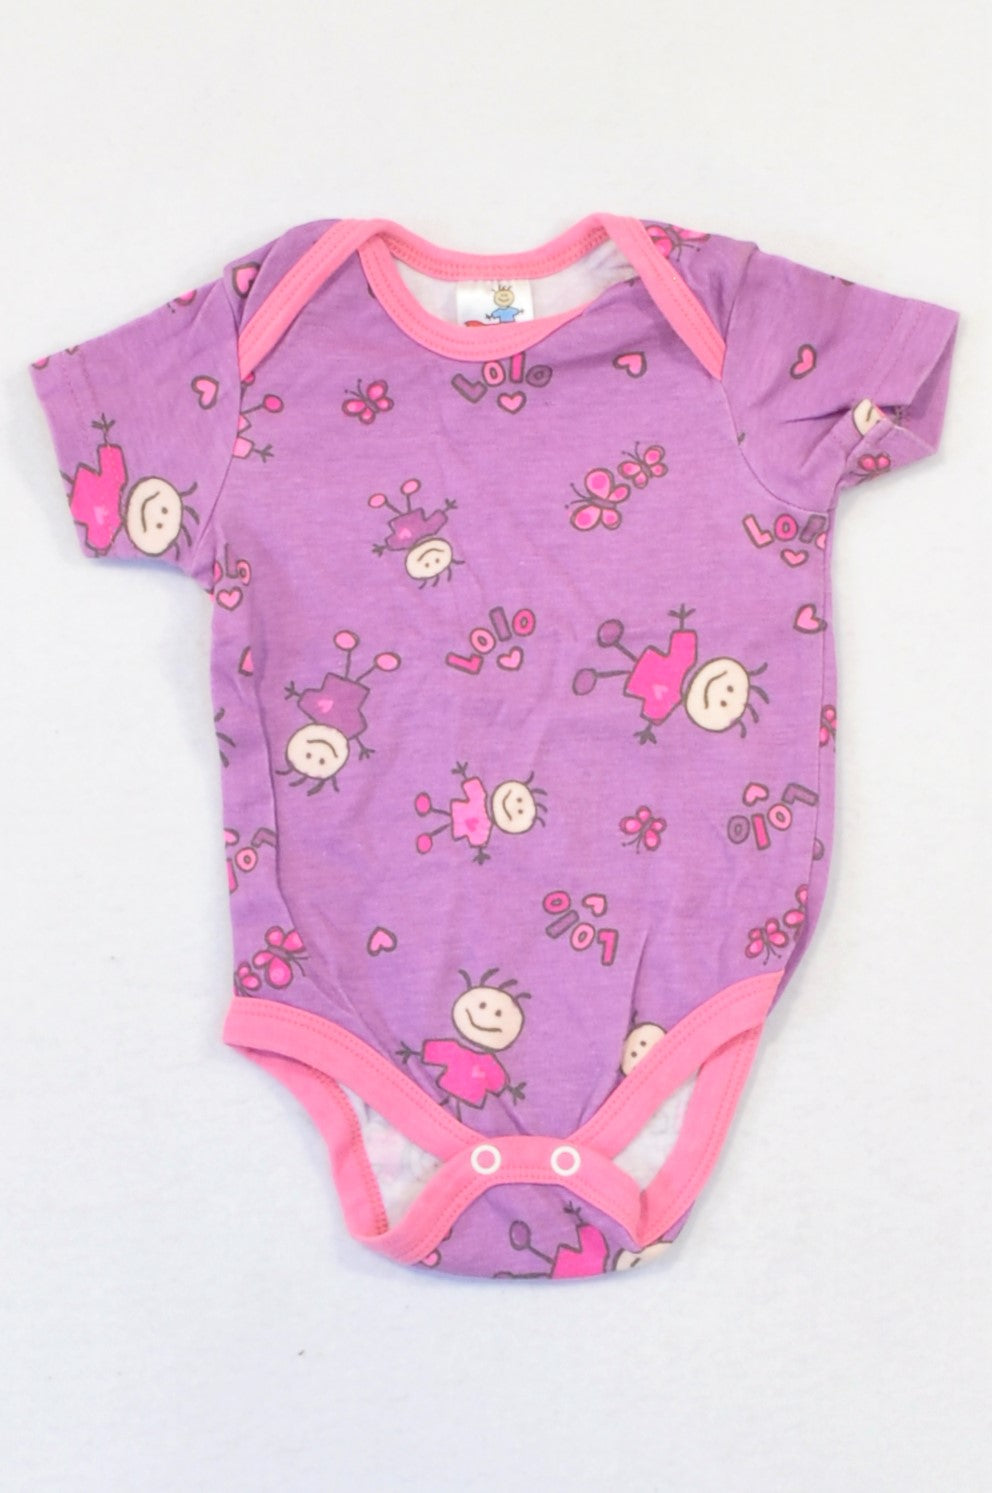 The Children's Place Purple & Pink LOLO Baby Grow Girls 3-6 months